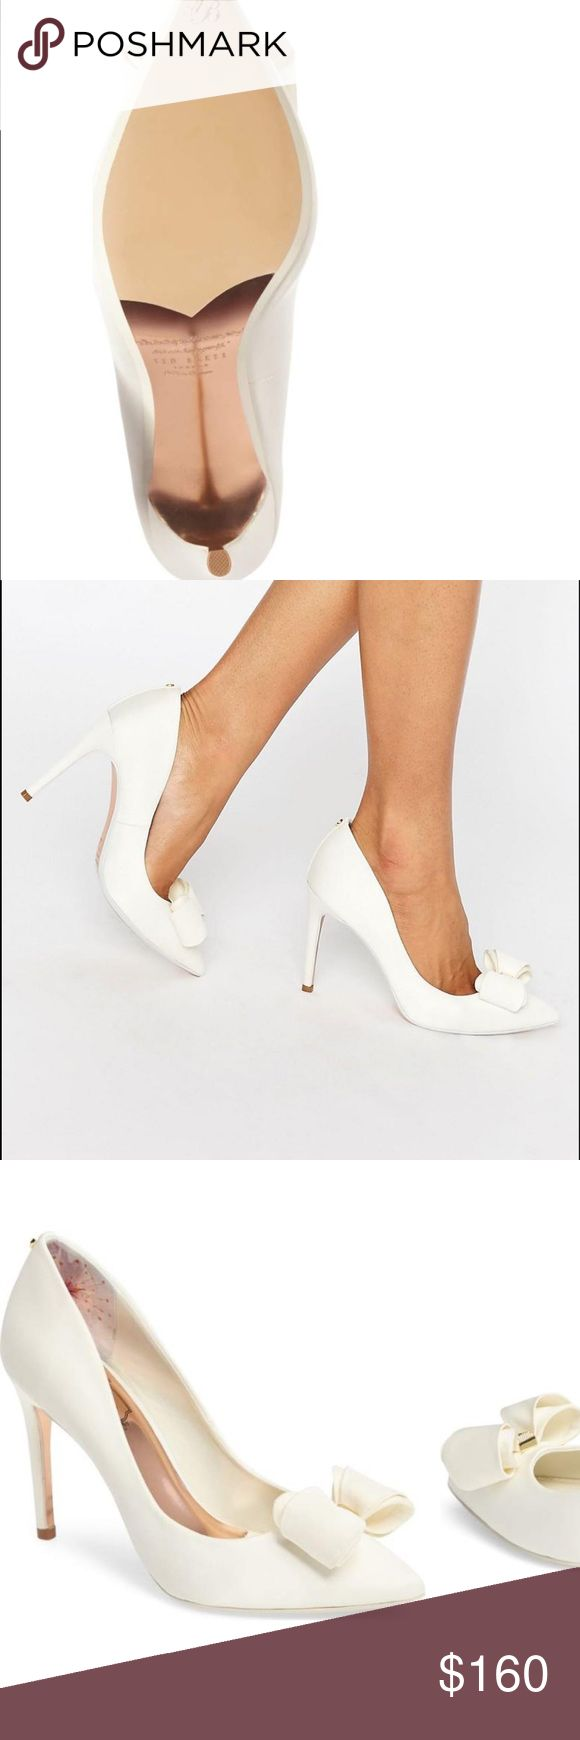 SALE!! Ted baker High heels Ted Baker white high heels Ted Baker Shoes Heels